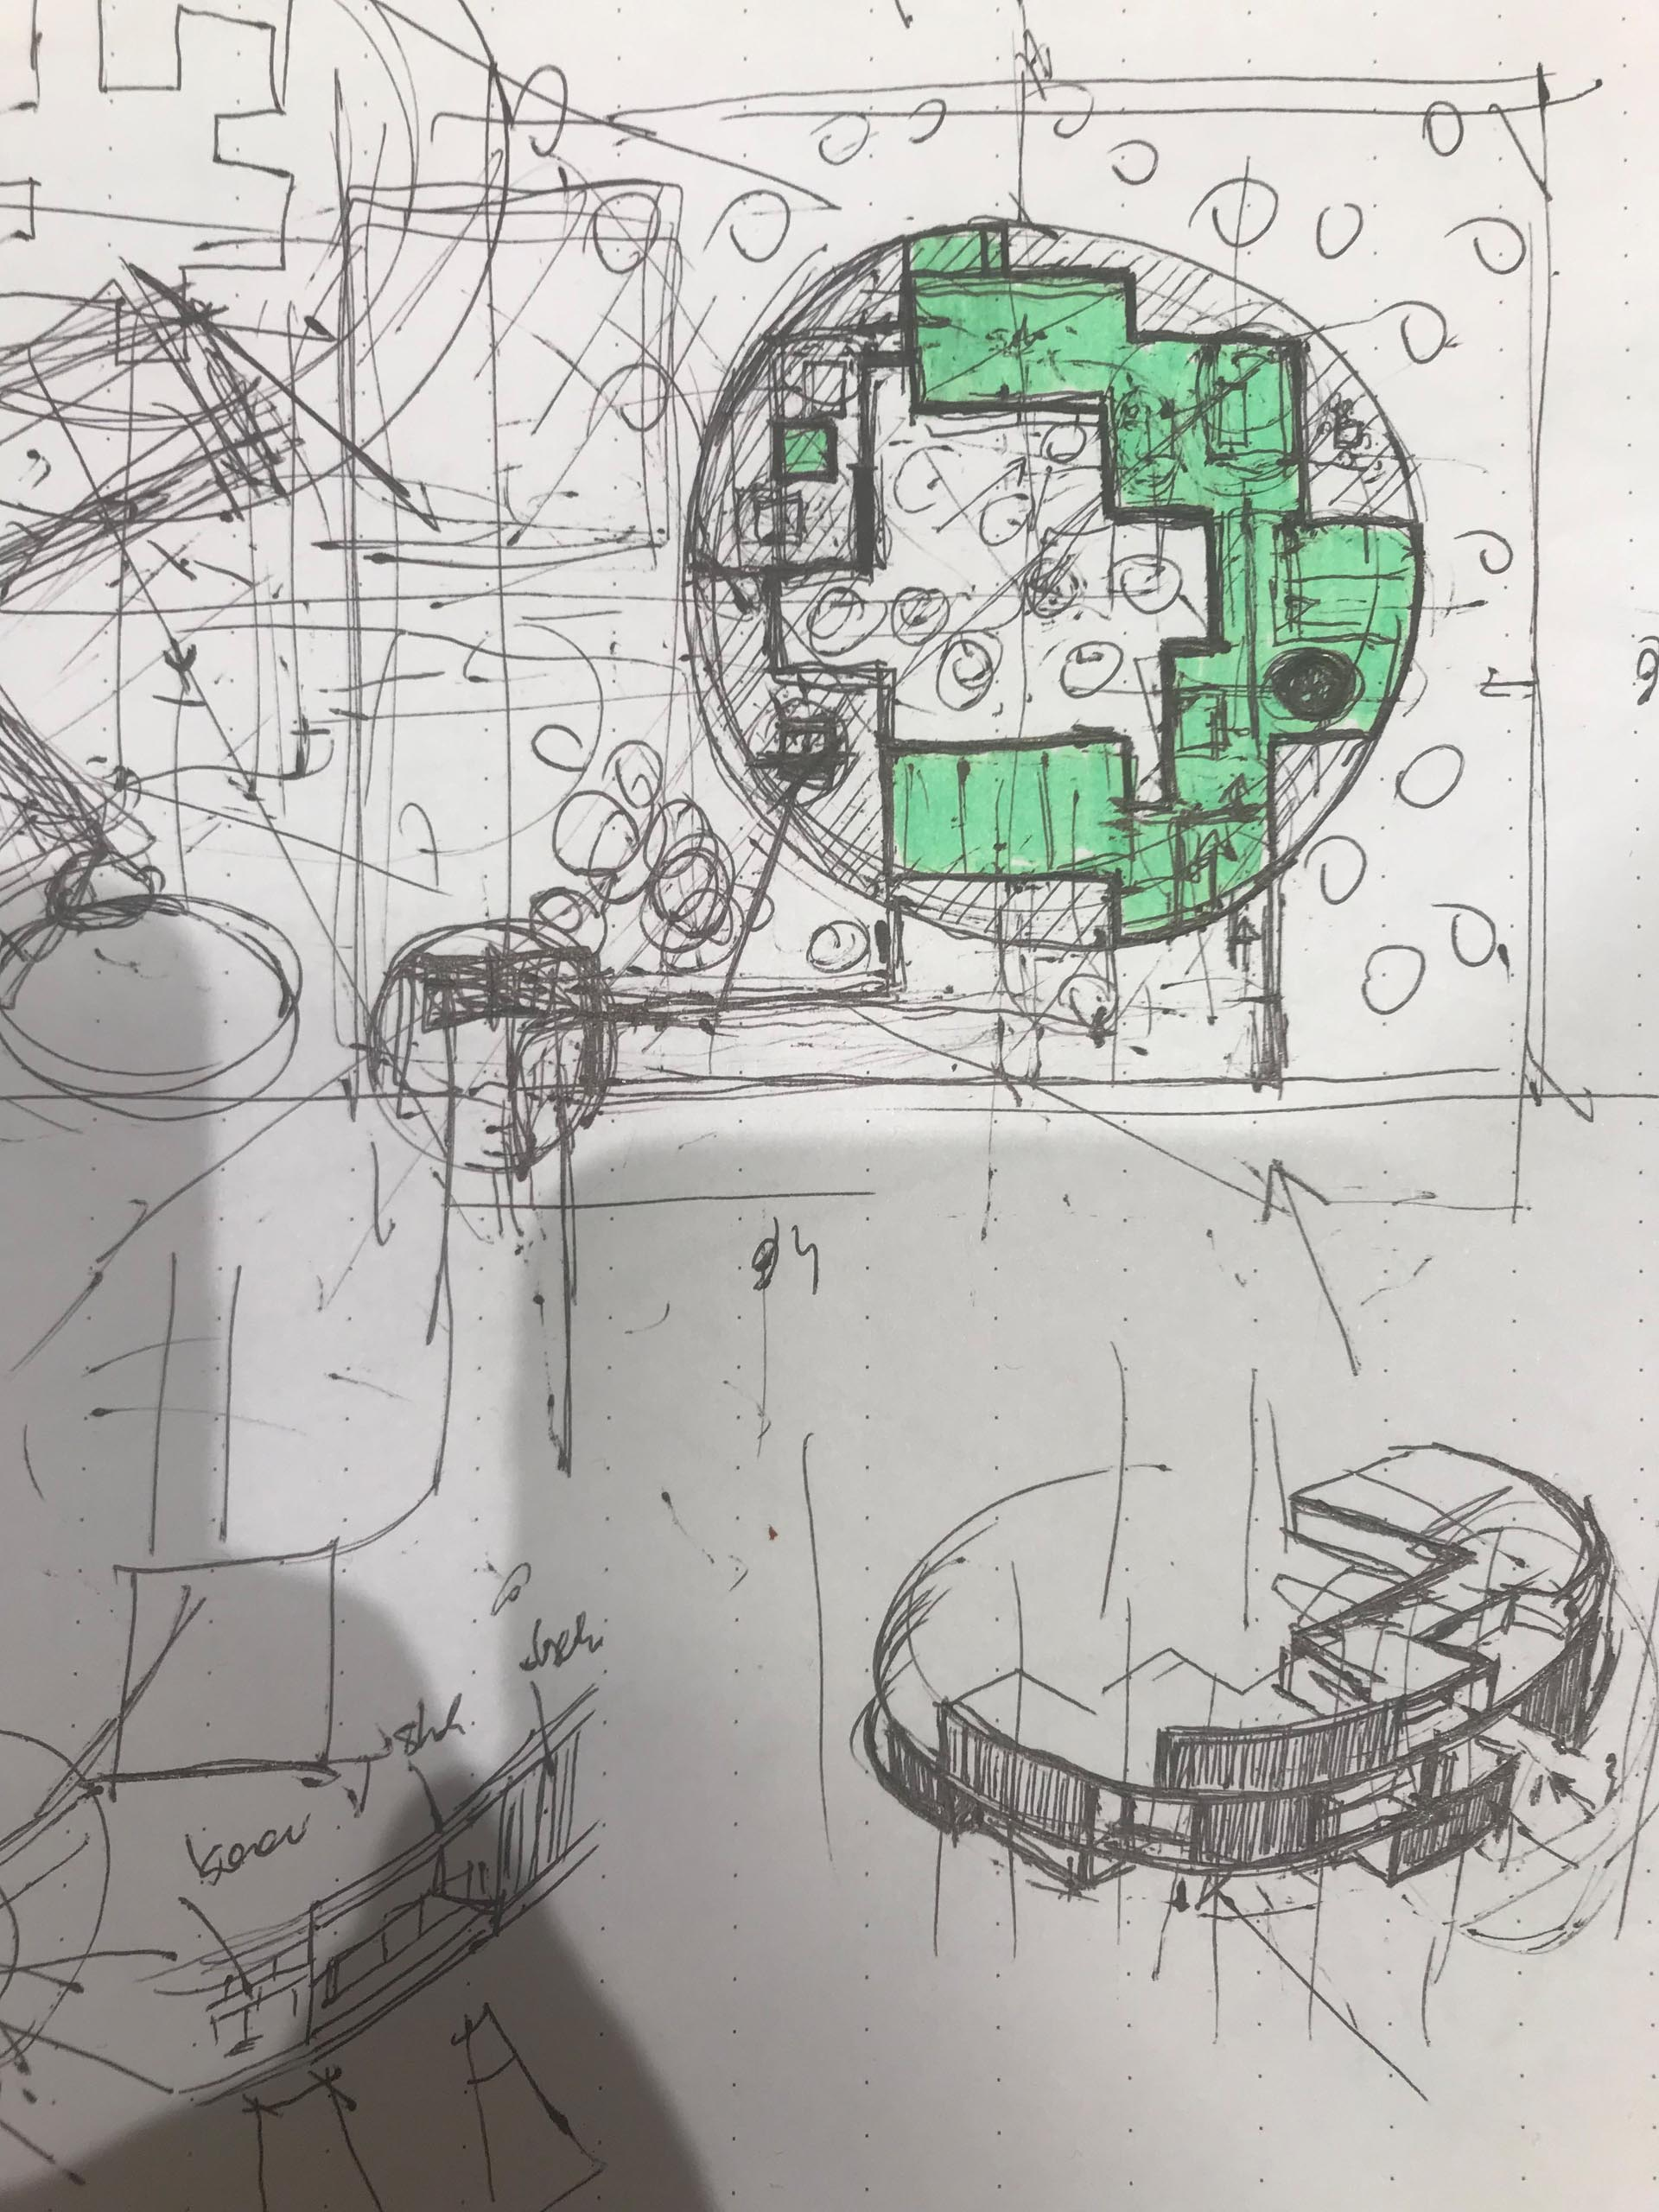 The architect's sketch of a circular home.